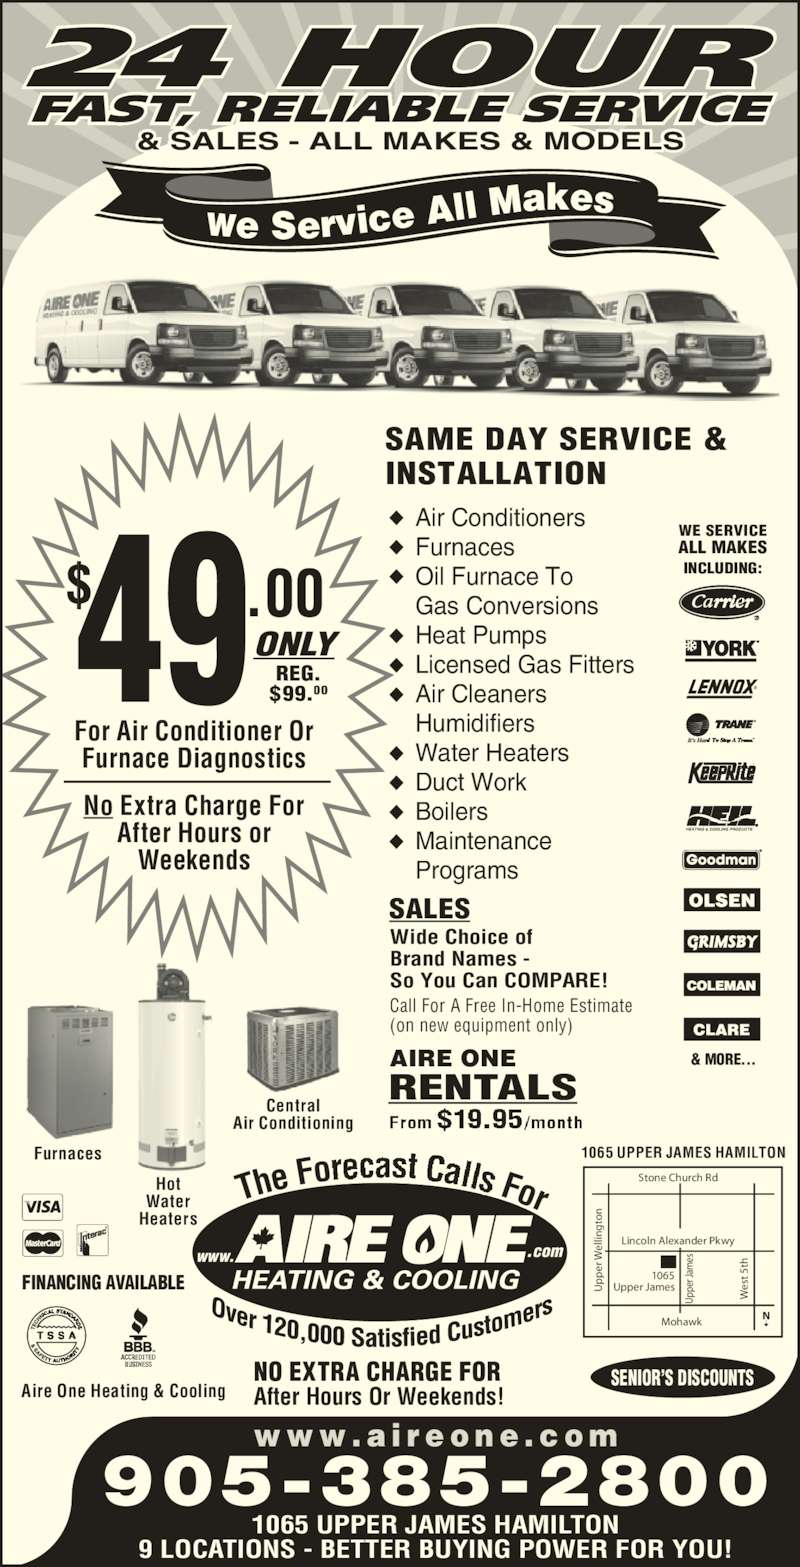 Aire One Heating & Cooling (905-385-2800) - Display Ad - & MORE... INCLUDING: WE SERVICE ALL MAKES INCLUDING: FAST, RELIABLE SERVICE 24 HOUR & SALES - ALL MAKES & MODELS We Service All  Makes Wide Choice of Brand Names - So You Can COMPARE! Call For A Free In-Home Estimate (on new equipment only) es t  5t Up pe r J am es er el lin to AIRE ONE For Air Conditioner Or Furnace Diagnostics No Extra Charge For After Hours or Weekends 49$ .00ONLYREG.$99.00 1065 UPPER JAMES HAMILTON 9 LOCATIONS - BETTER BUYING POWER FOR YOU! NO EXTRA CHARGE FOR After Hours Or Weekends! SALES RENTALS lin to 1065 UPPER JAMES HAMILTONFurnaces Central Air Conditioning Hot Water Heaters ◆ ◆ ◆ ◆ ◆ ◆ ◆ ◆ ◆ ◆ Air Conditioners Furnaces Oil Furnace To Gas Conversions am es 1065 Upper James Lincoln Alexander Pkwy Mohawk r J er  W el Stone Church Rd es t  5t Up pe Licensed Gas Fitters Air Cleaners Humidifiers Water Heaters Duct Work Boilers Heat Pumps Maintenance Programs FINANCING AVAILABLE SENIOR'S DISCOUNTS Aire One Heating & Cooling SAME DAY SERVICE & INSTALLATION .comwww. The Fo For w w w . a i r e o n e . c o m 905-385-2800